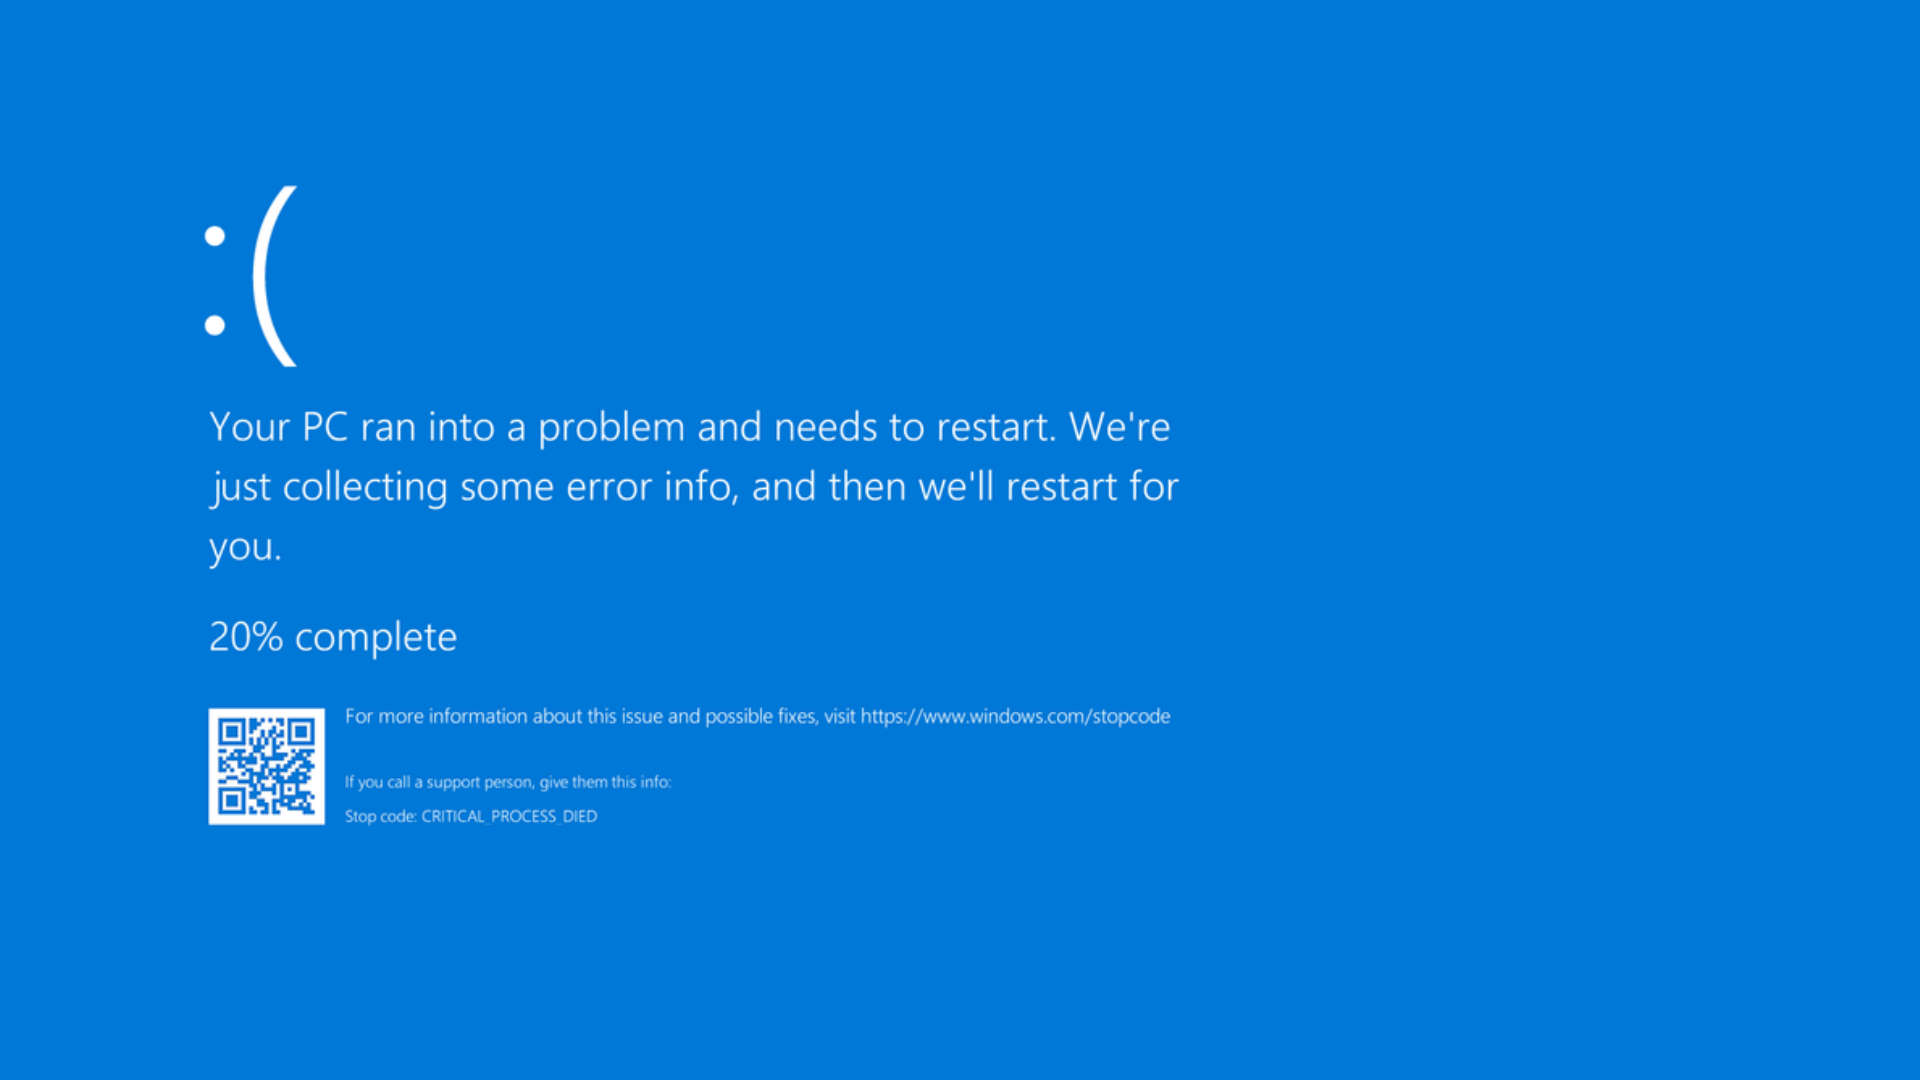 Windows 10 crashing when you try to print? There's now an official fix